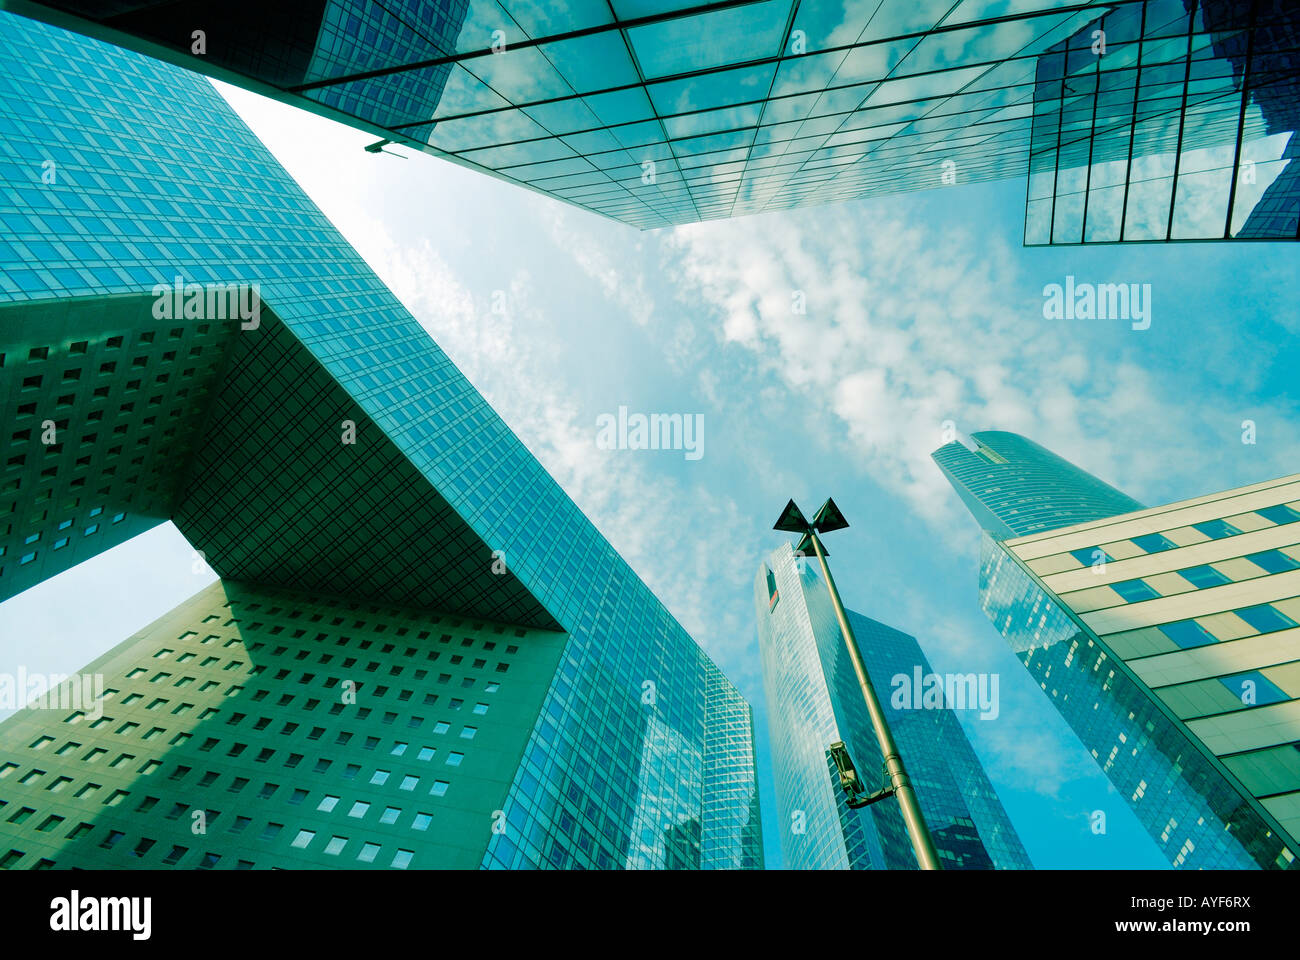 skyscrapers in financial district of La Defense Paris France - Stock Image